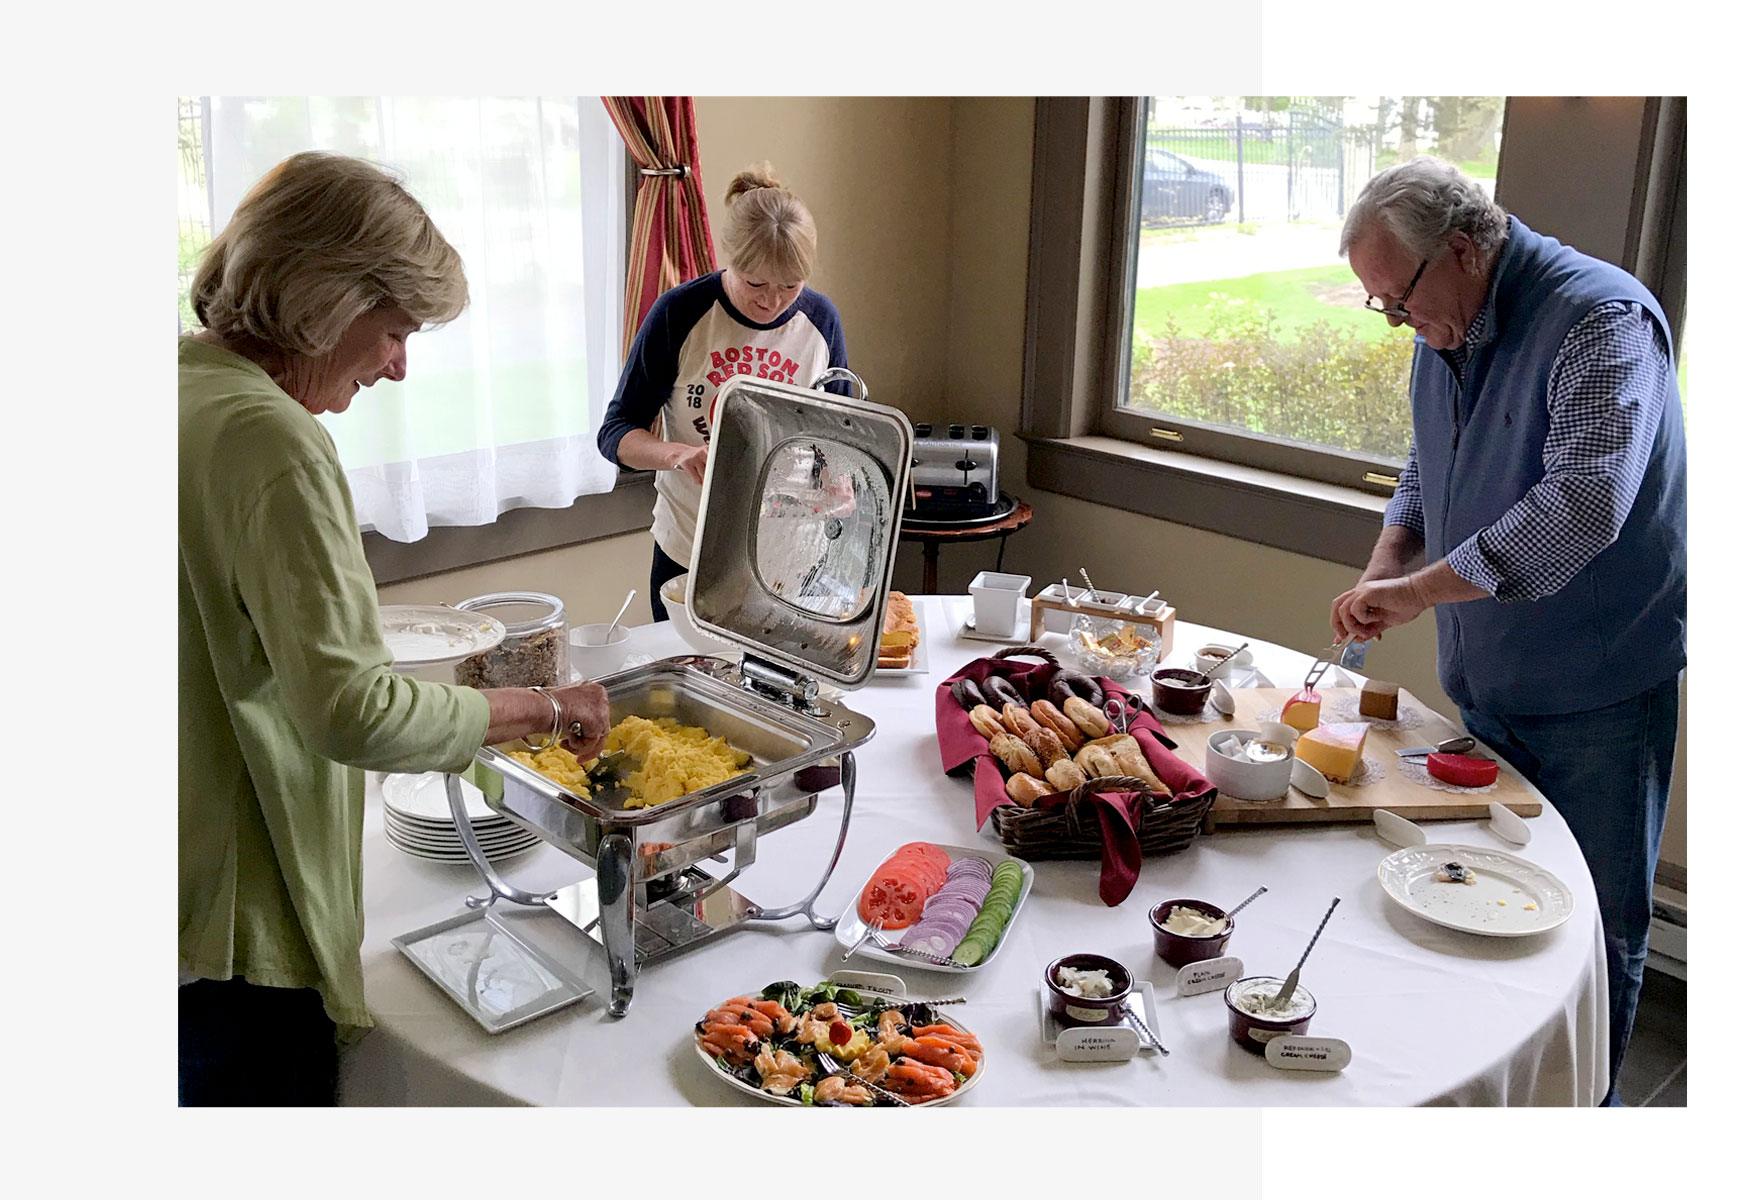 People helping themselves to the breakfast buffet.